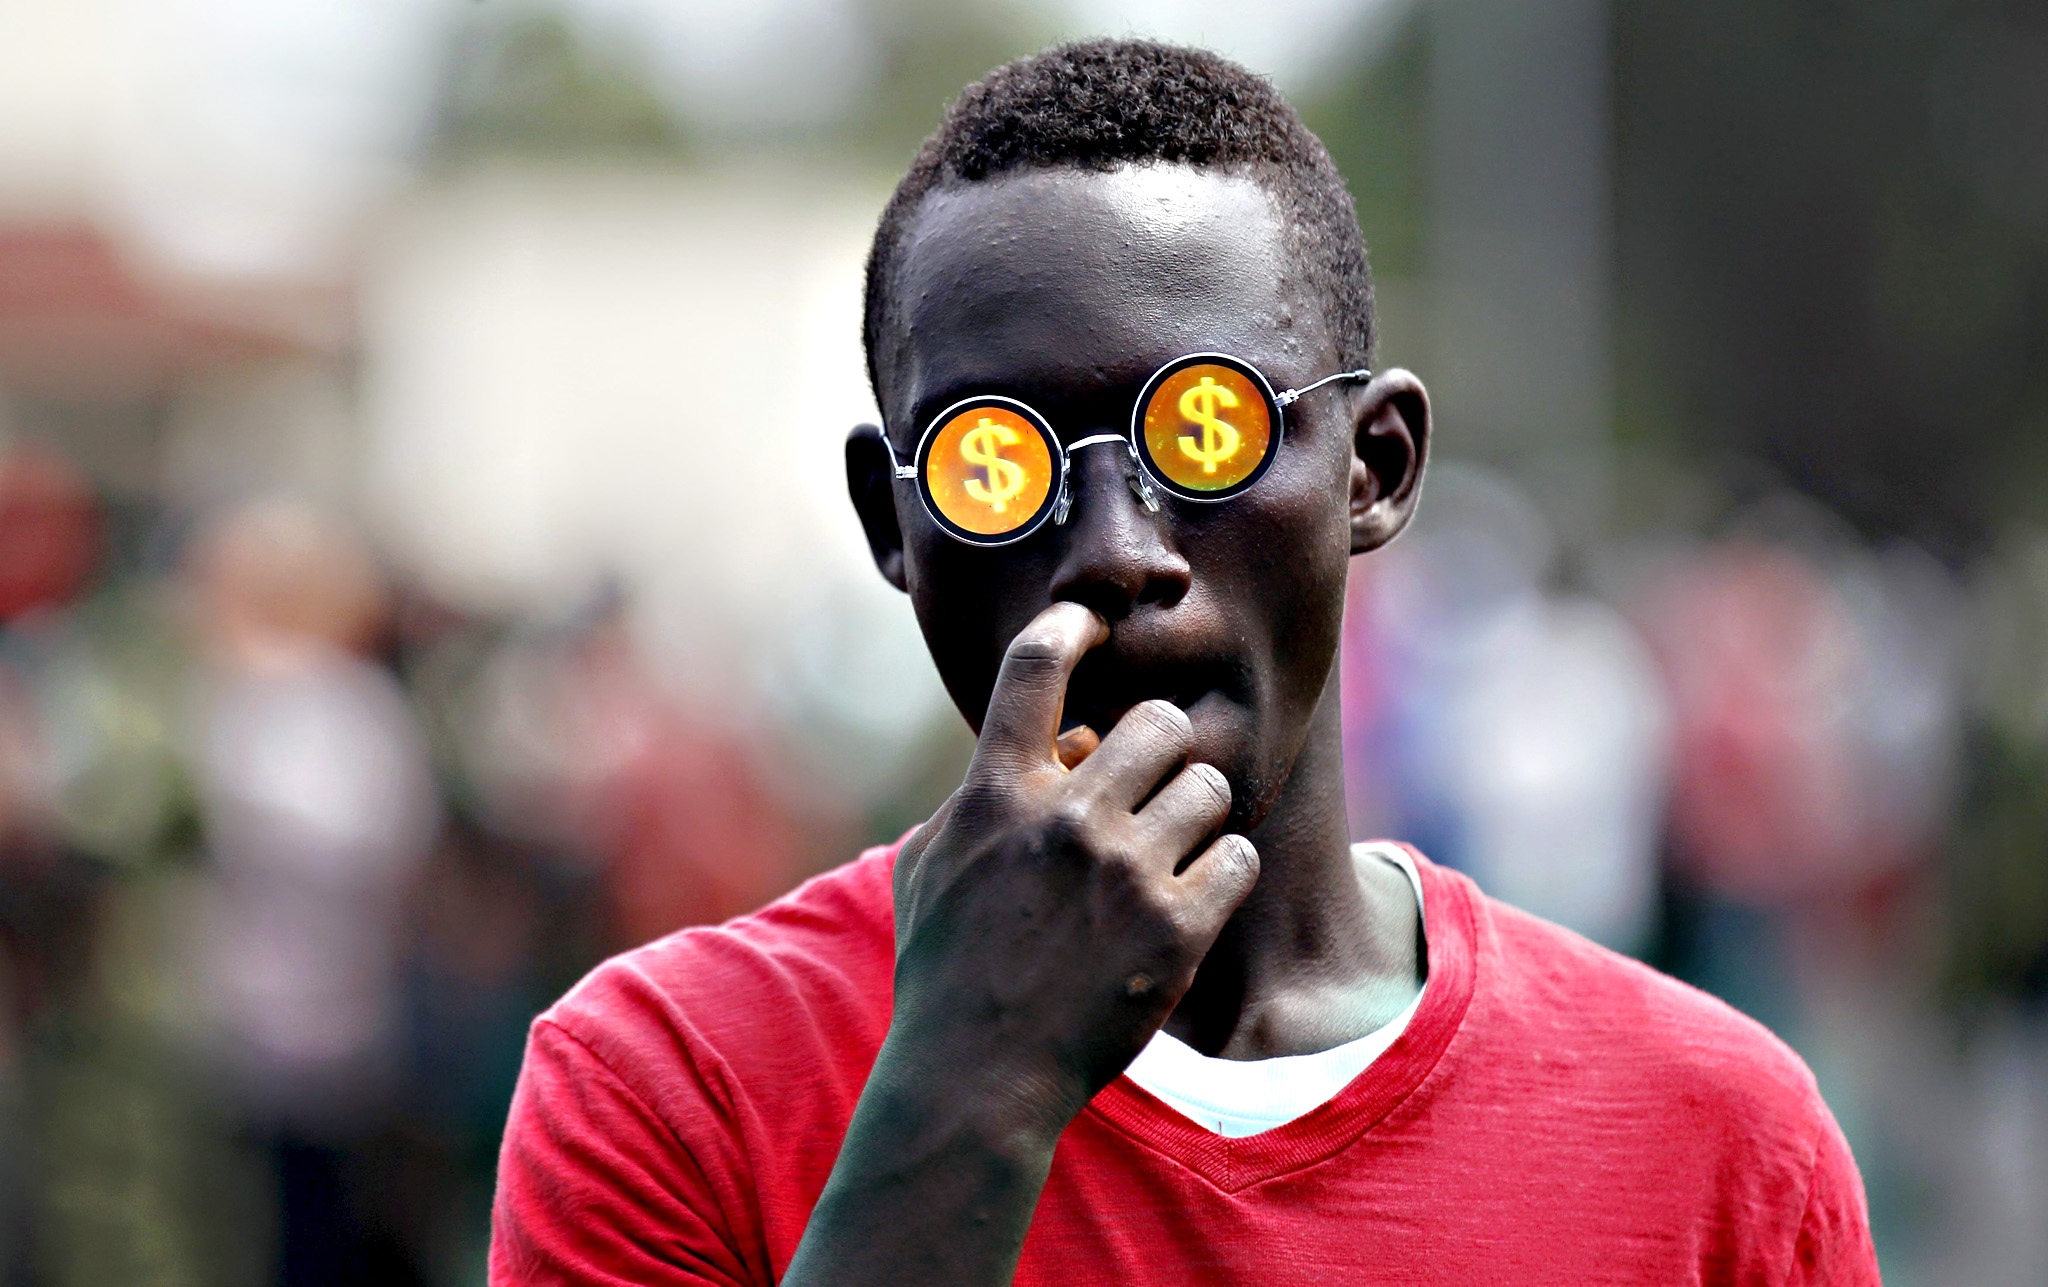 A boy wears sunglasses with the dollar sign as he walks down a street in Bujumbura, Burundi April 29, 2015.